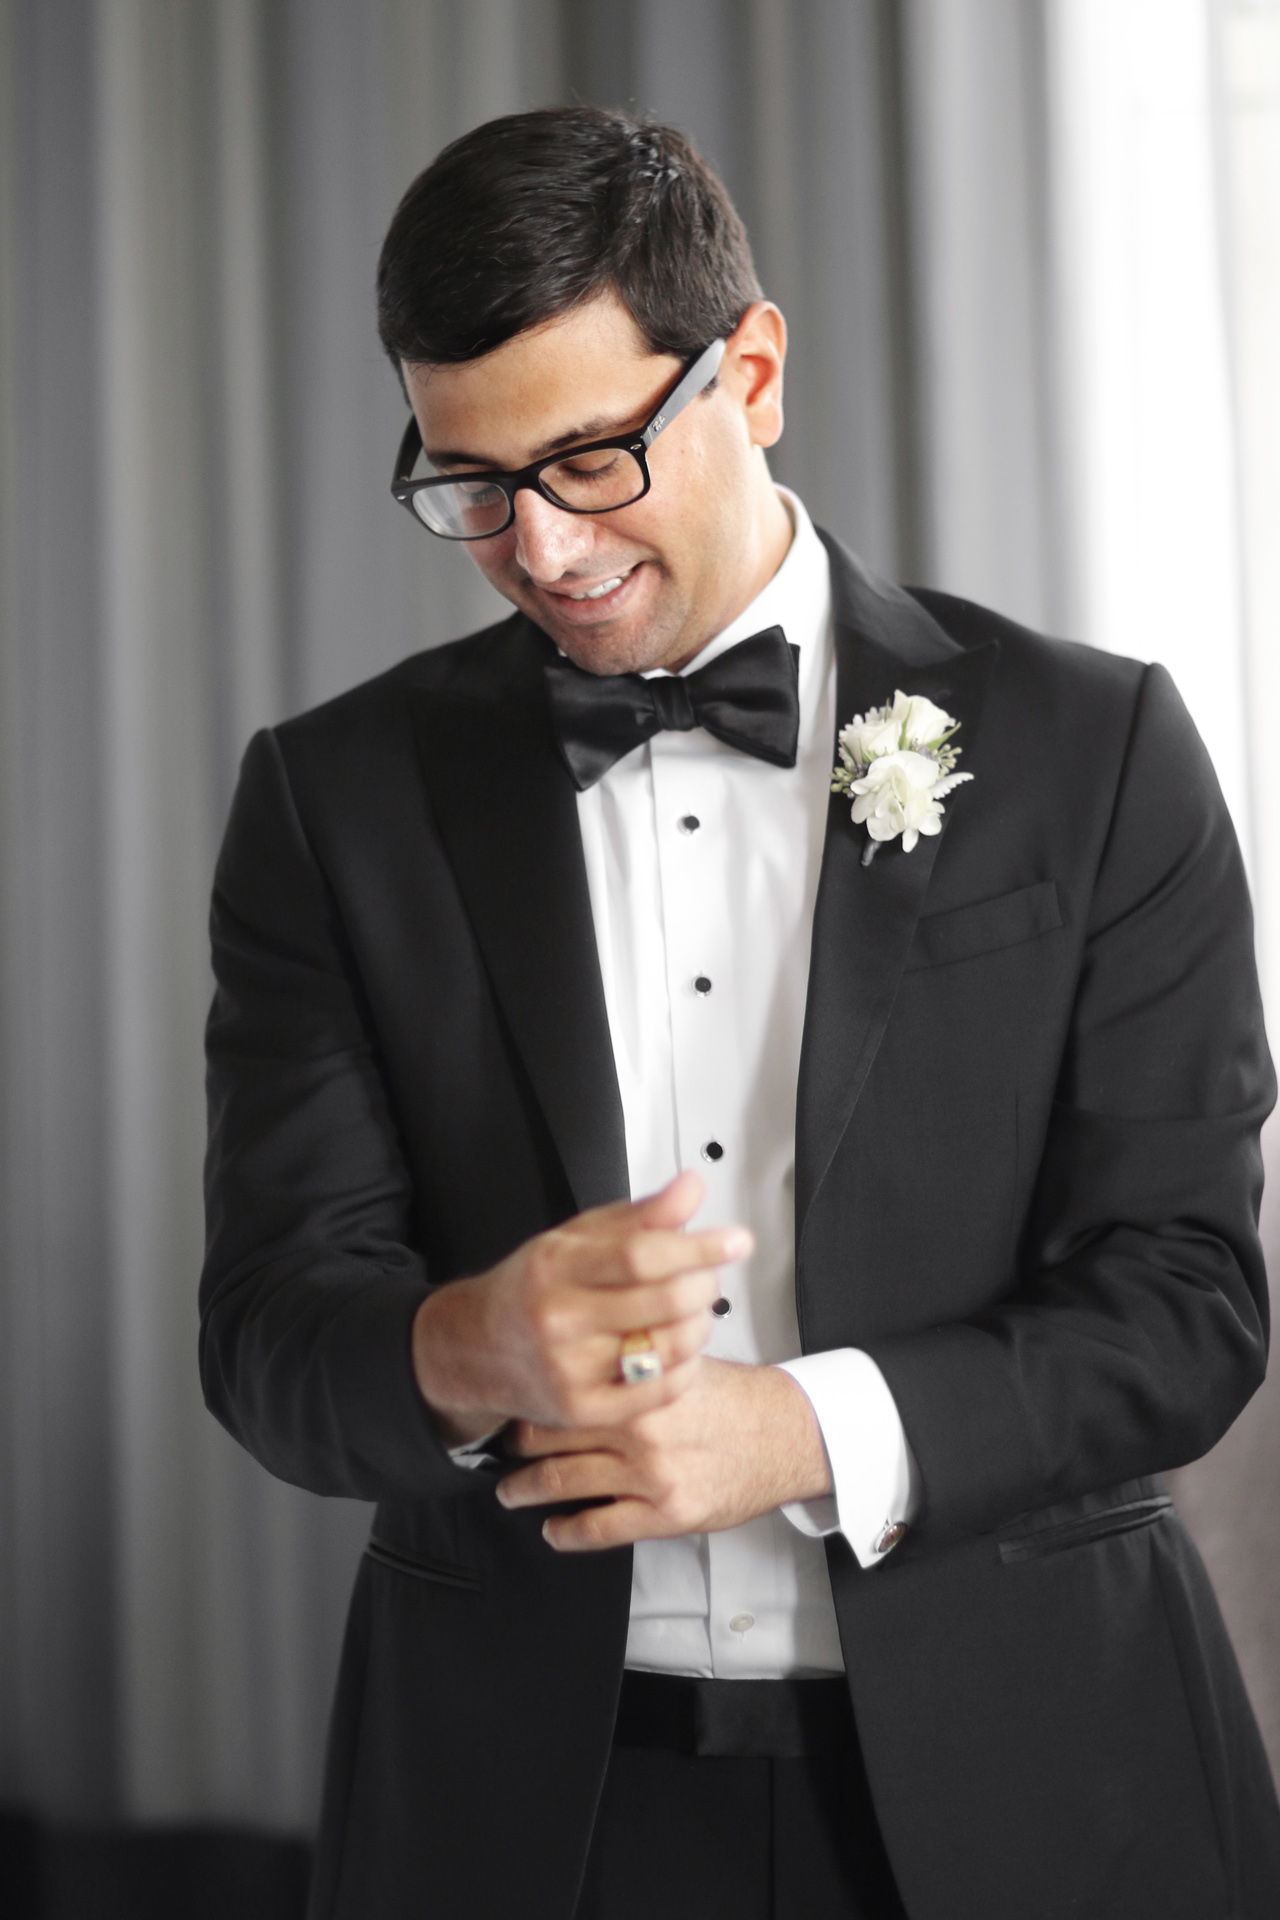 A groom adjusting his cuff links